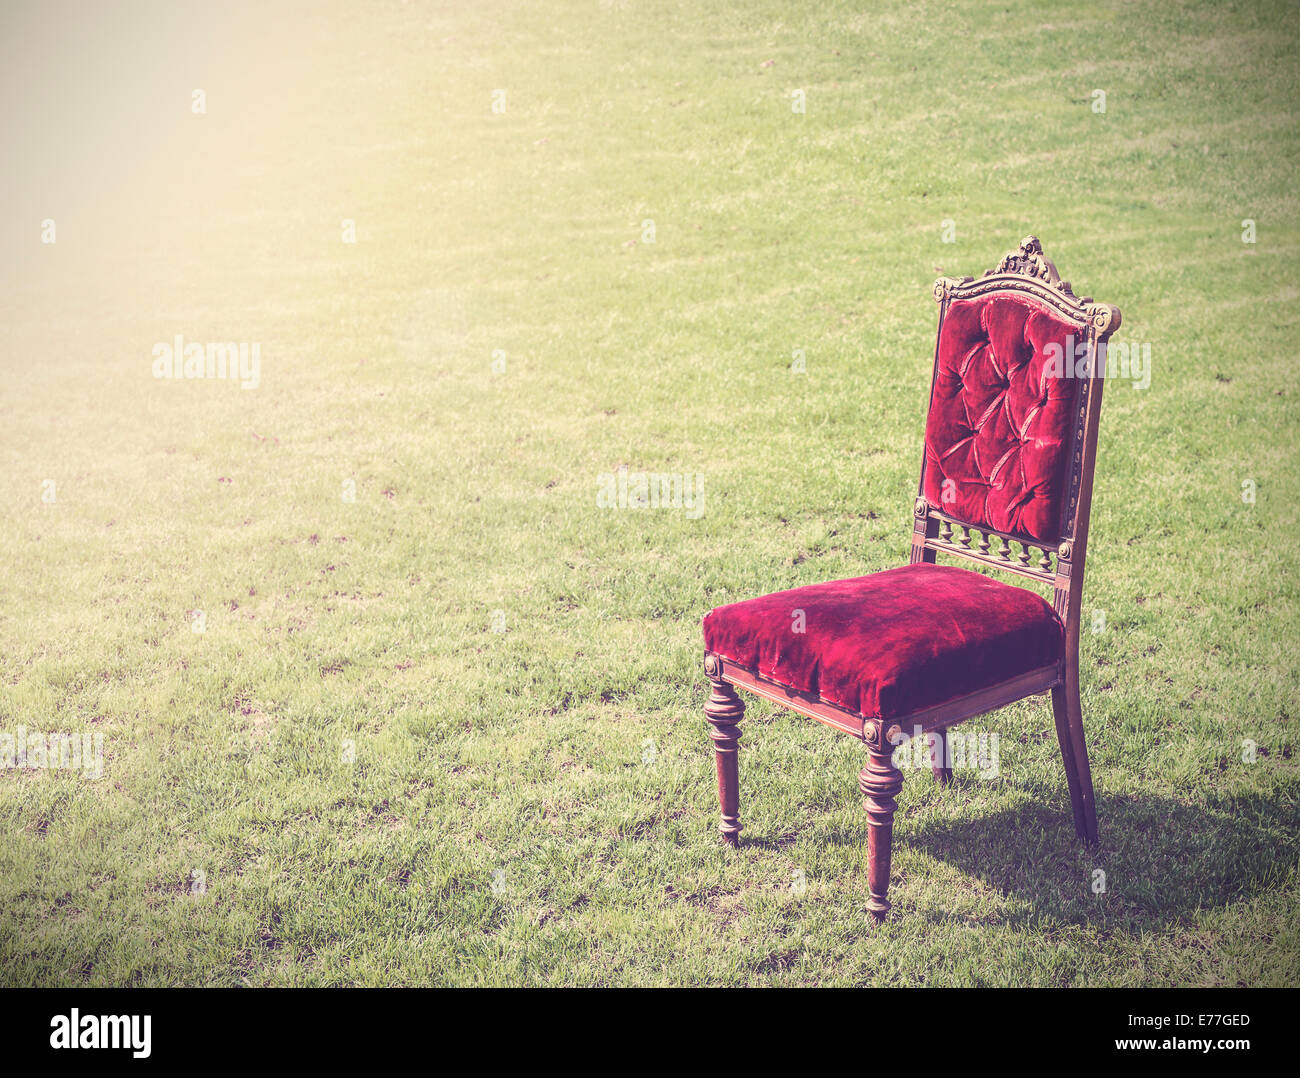 Vintage antique old red chair on green grass, abstract background. - Stock  Image - Antique Chair Grass Stock Photos & Antique Chair Grass Stock Images